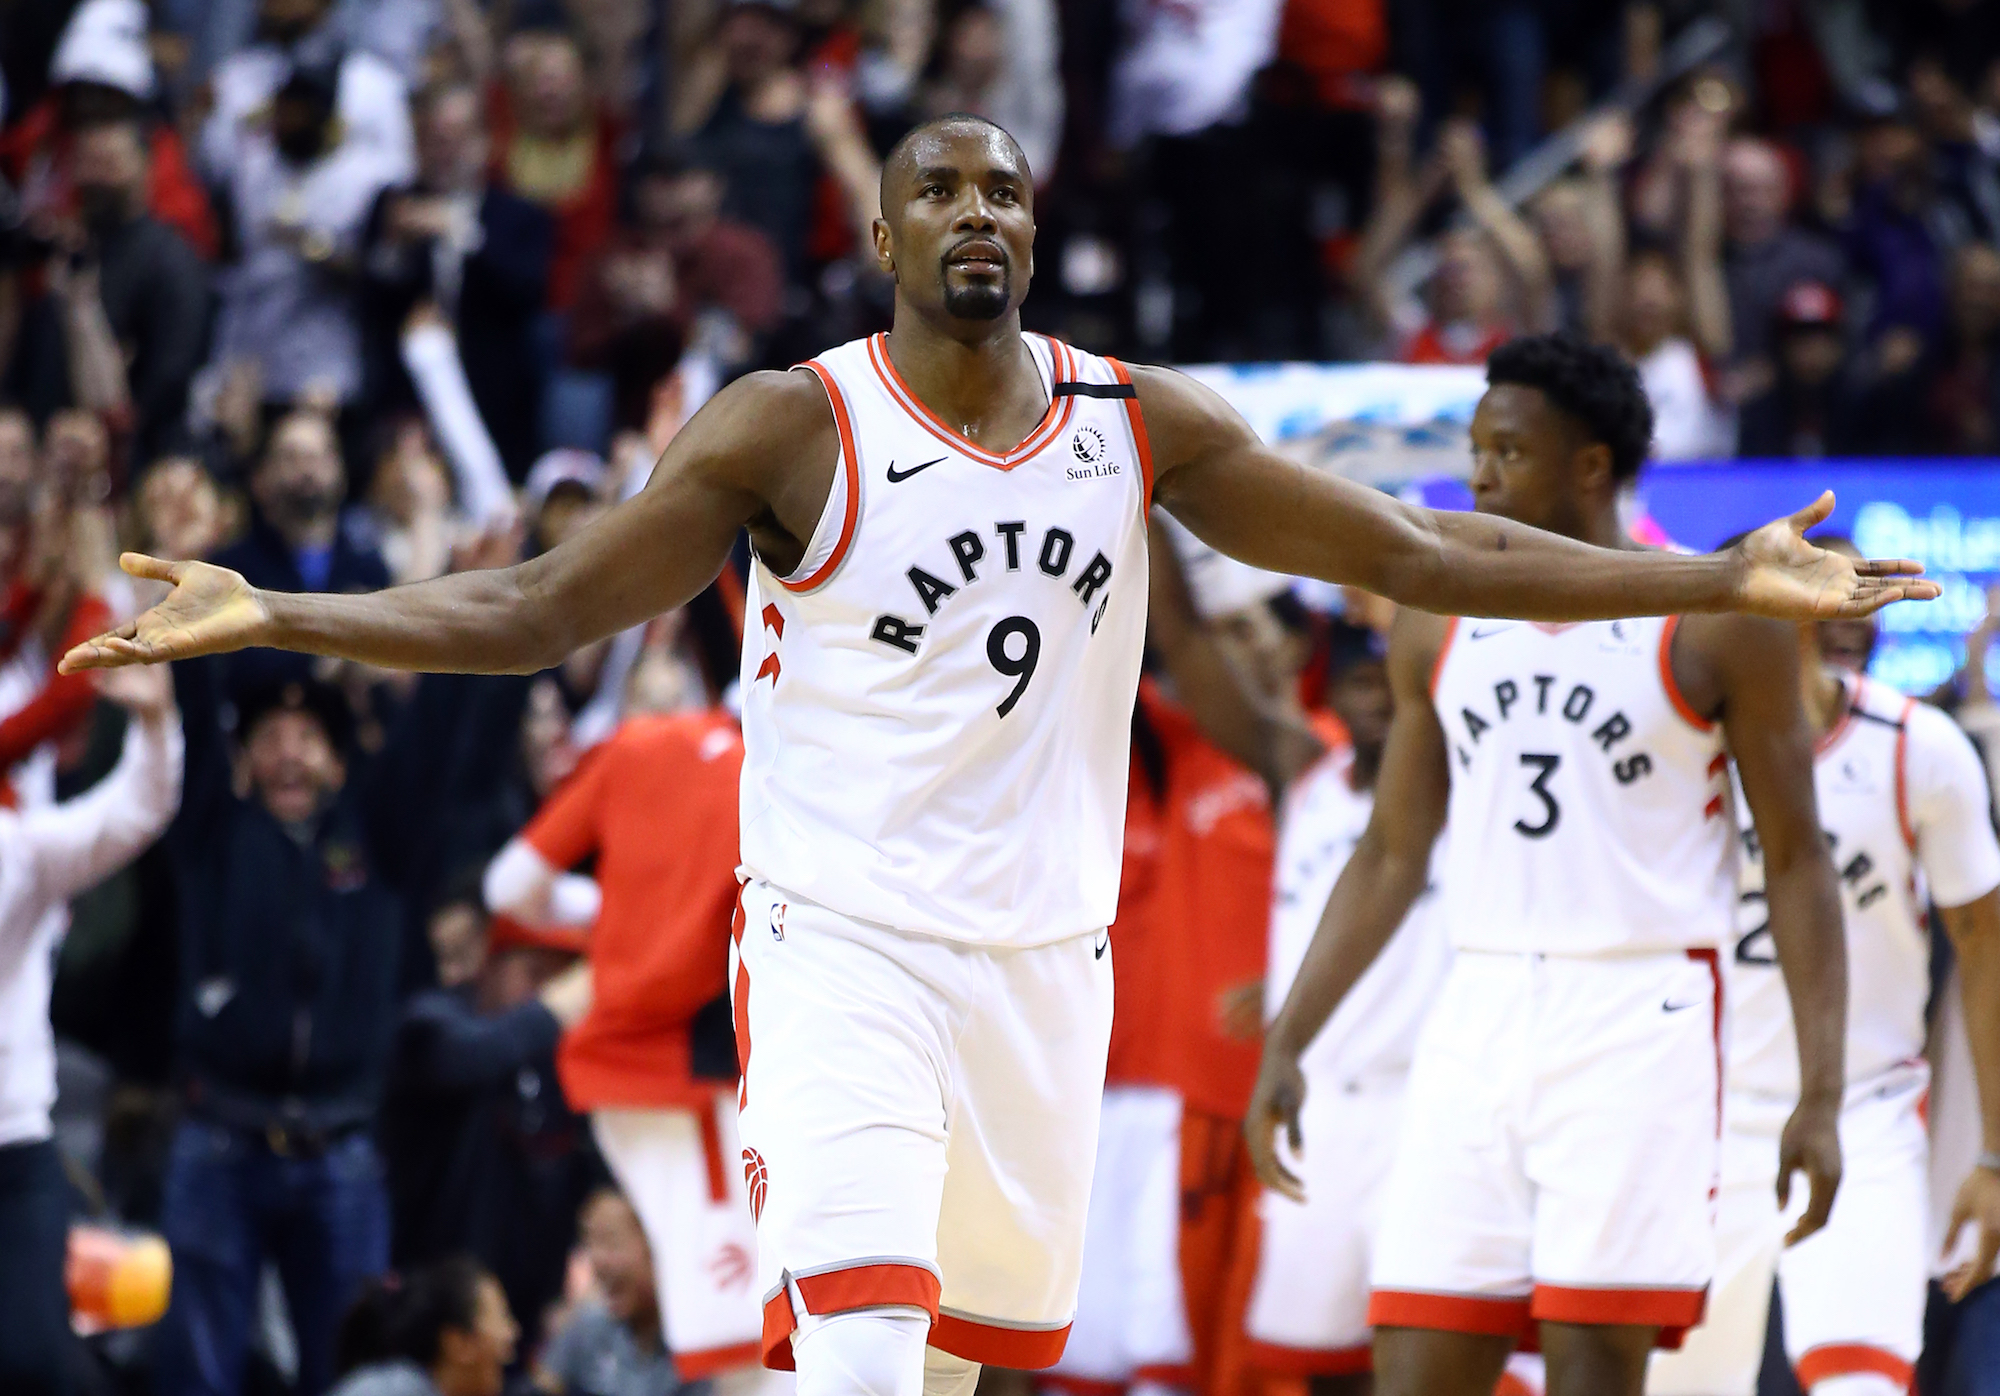 Serge Ibaka overcame a tragic childhood to become an NBA champion.